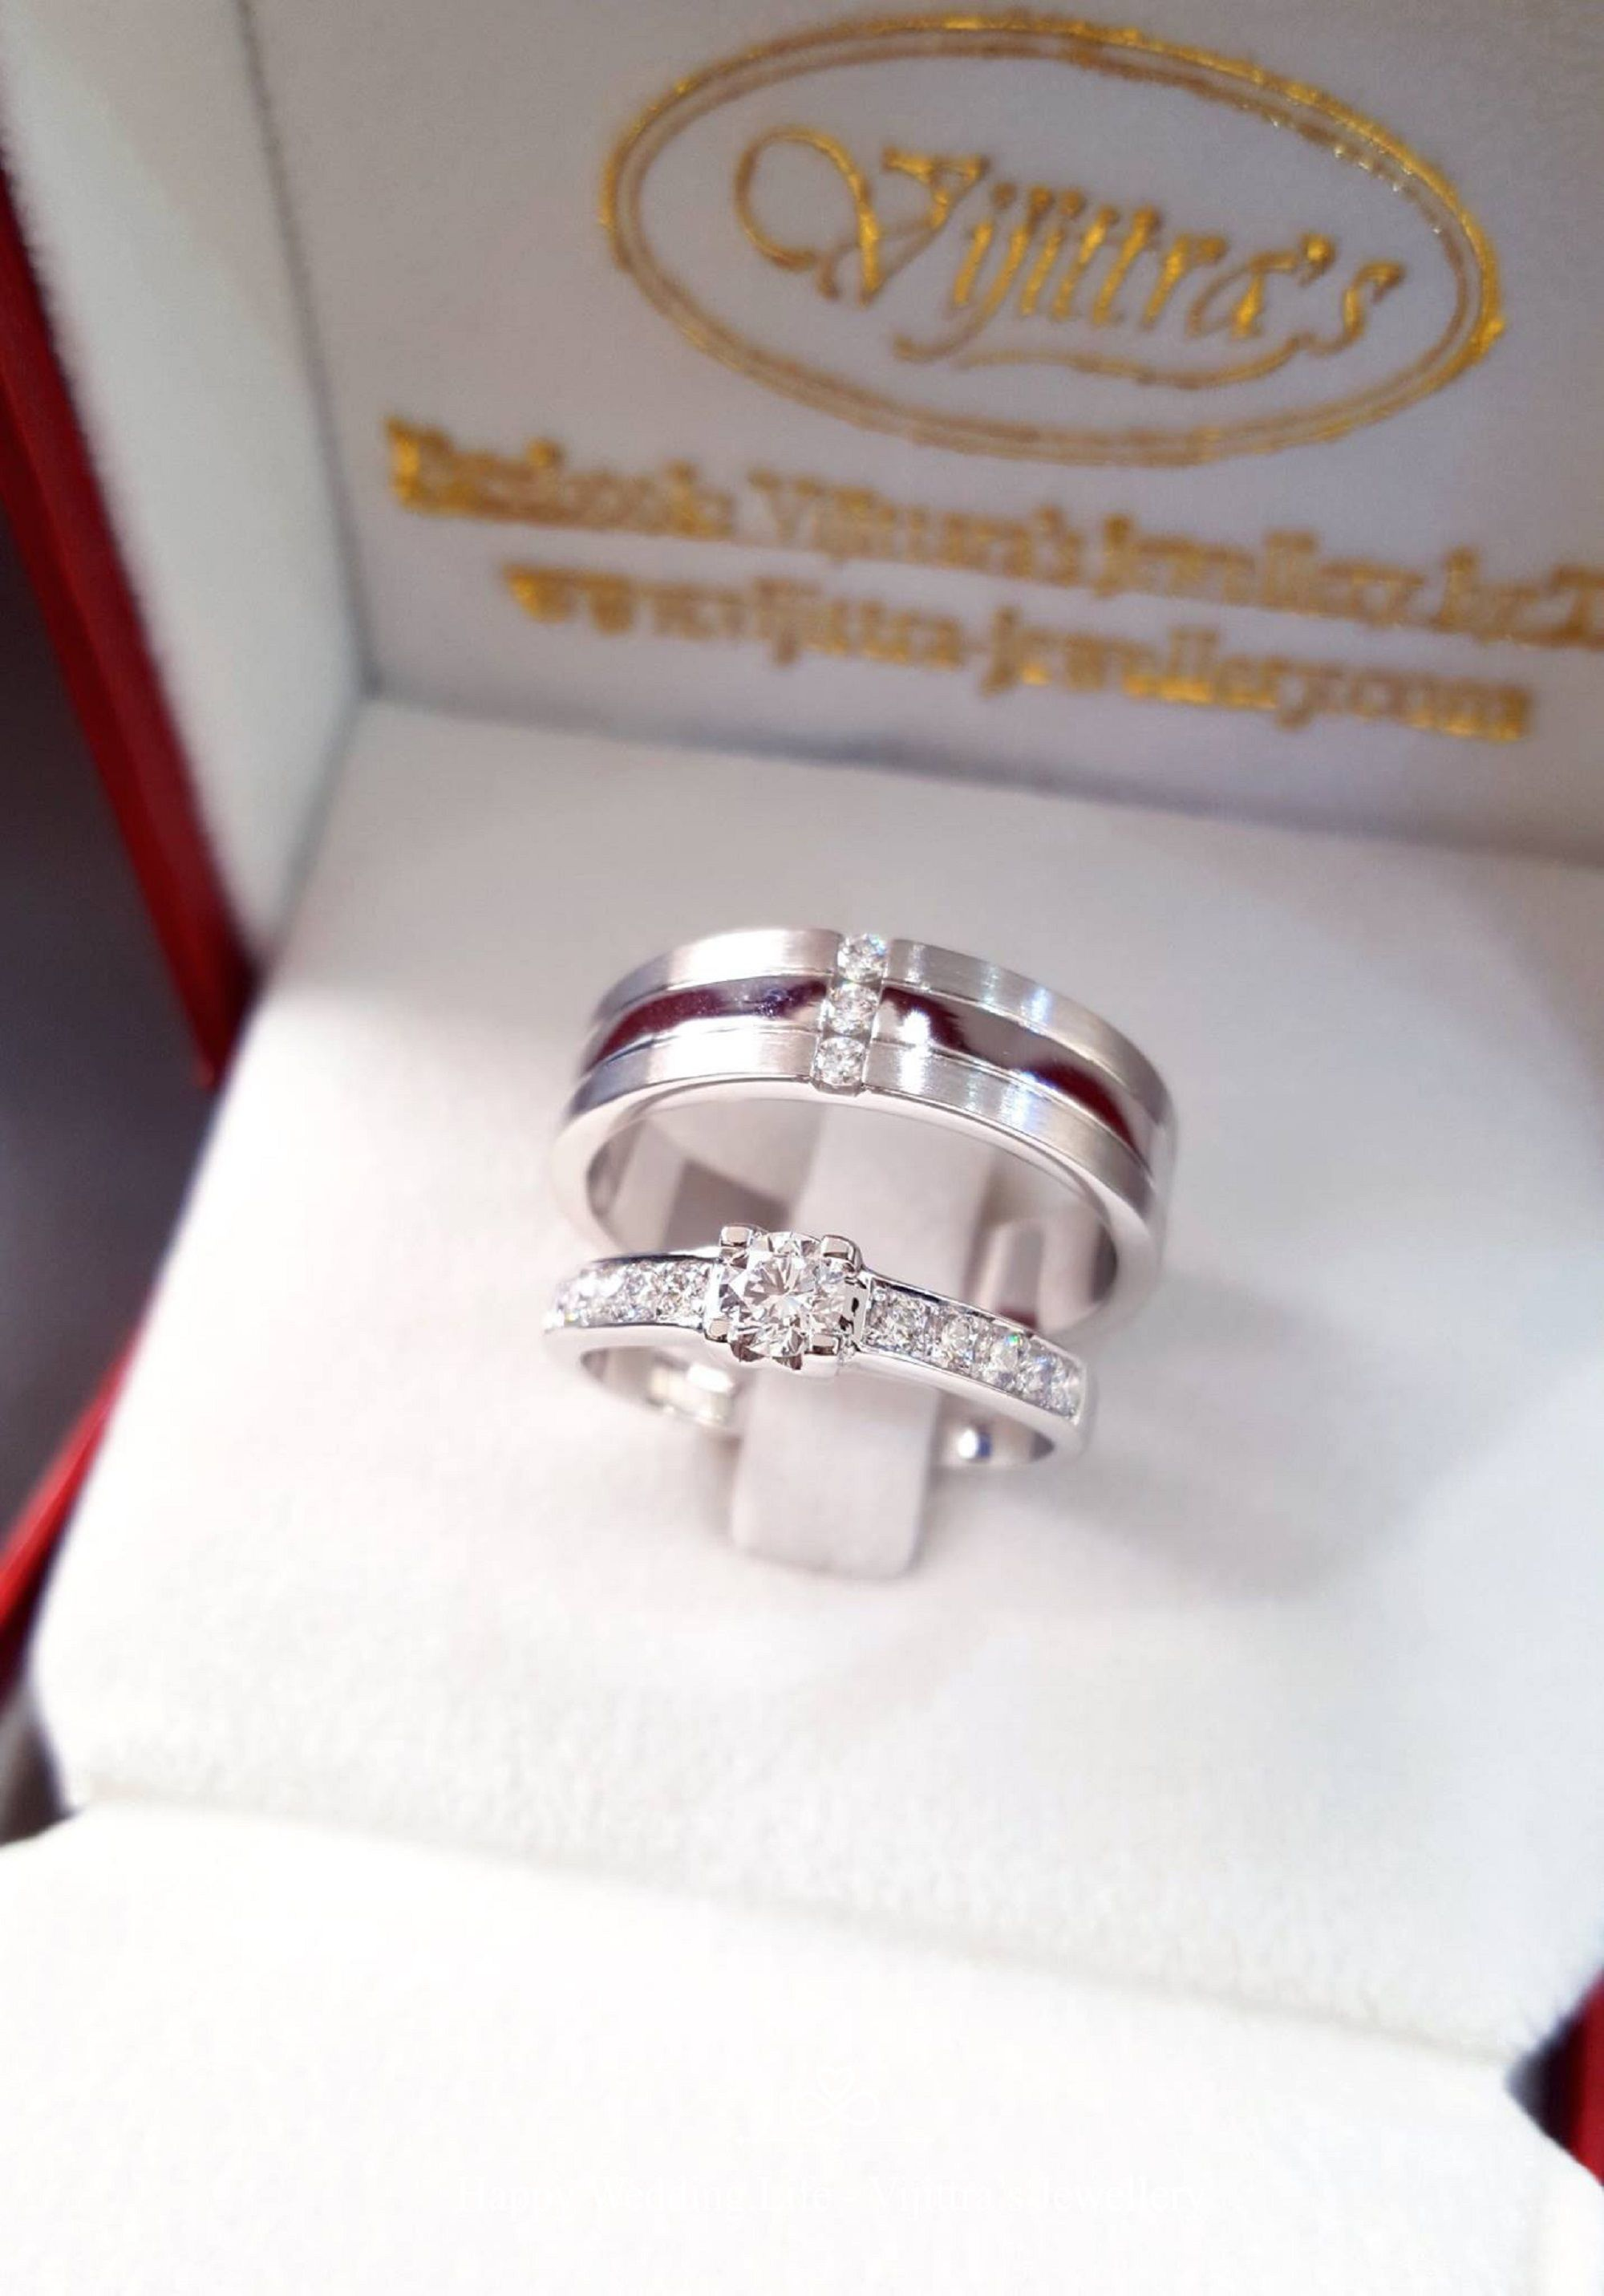 6f926a2e399 Hearts And Arrows Wedding Ring Designs | Simple Jewelry Designs ...